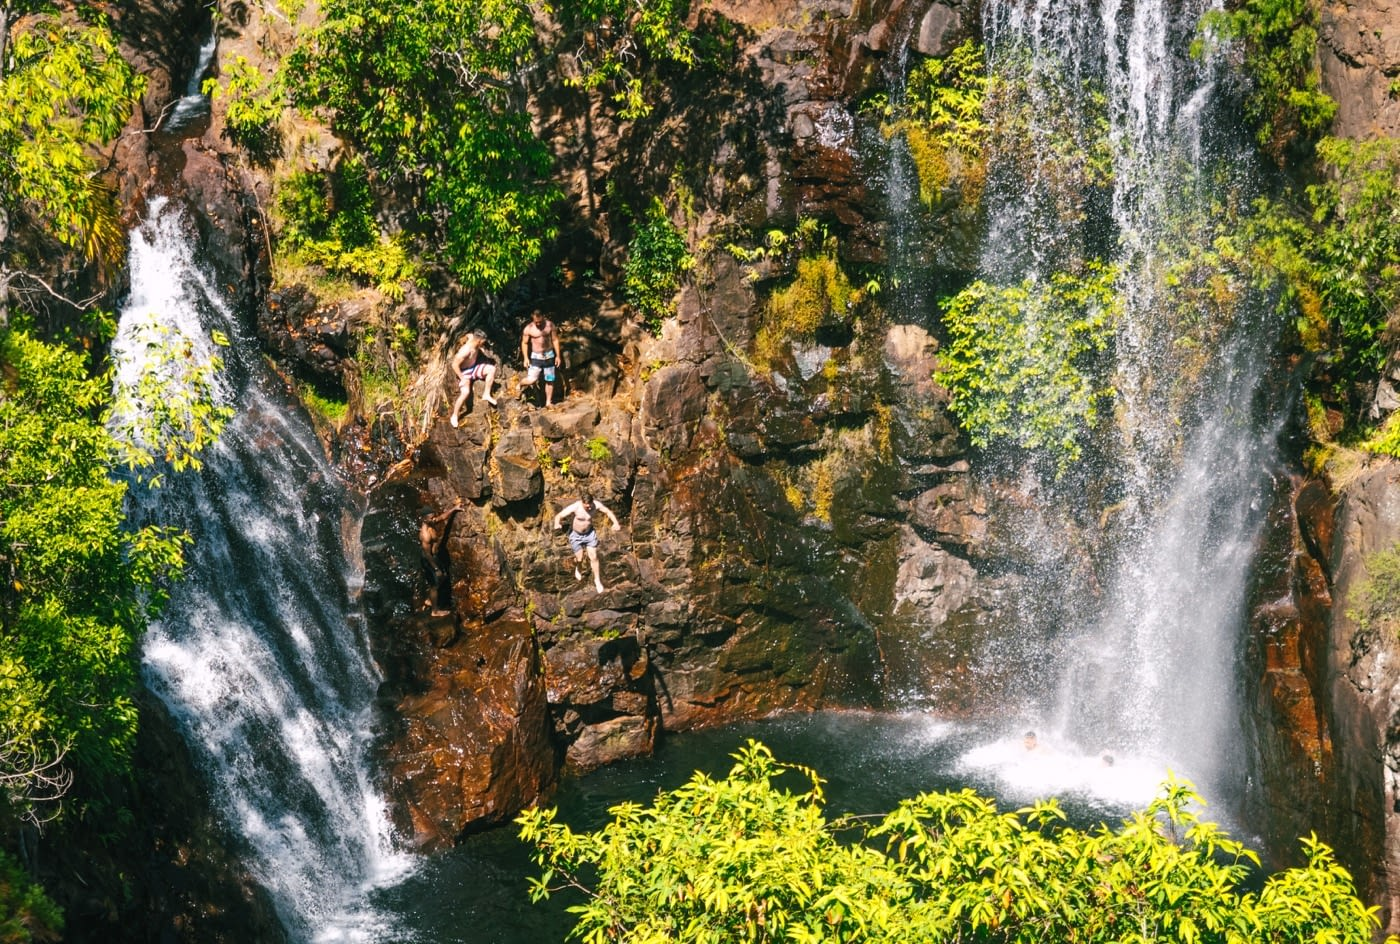 Litchfield National Park - Military guys jumping off the waterfalls in Litchfield National Park